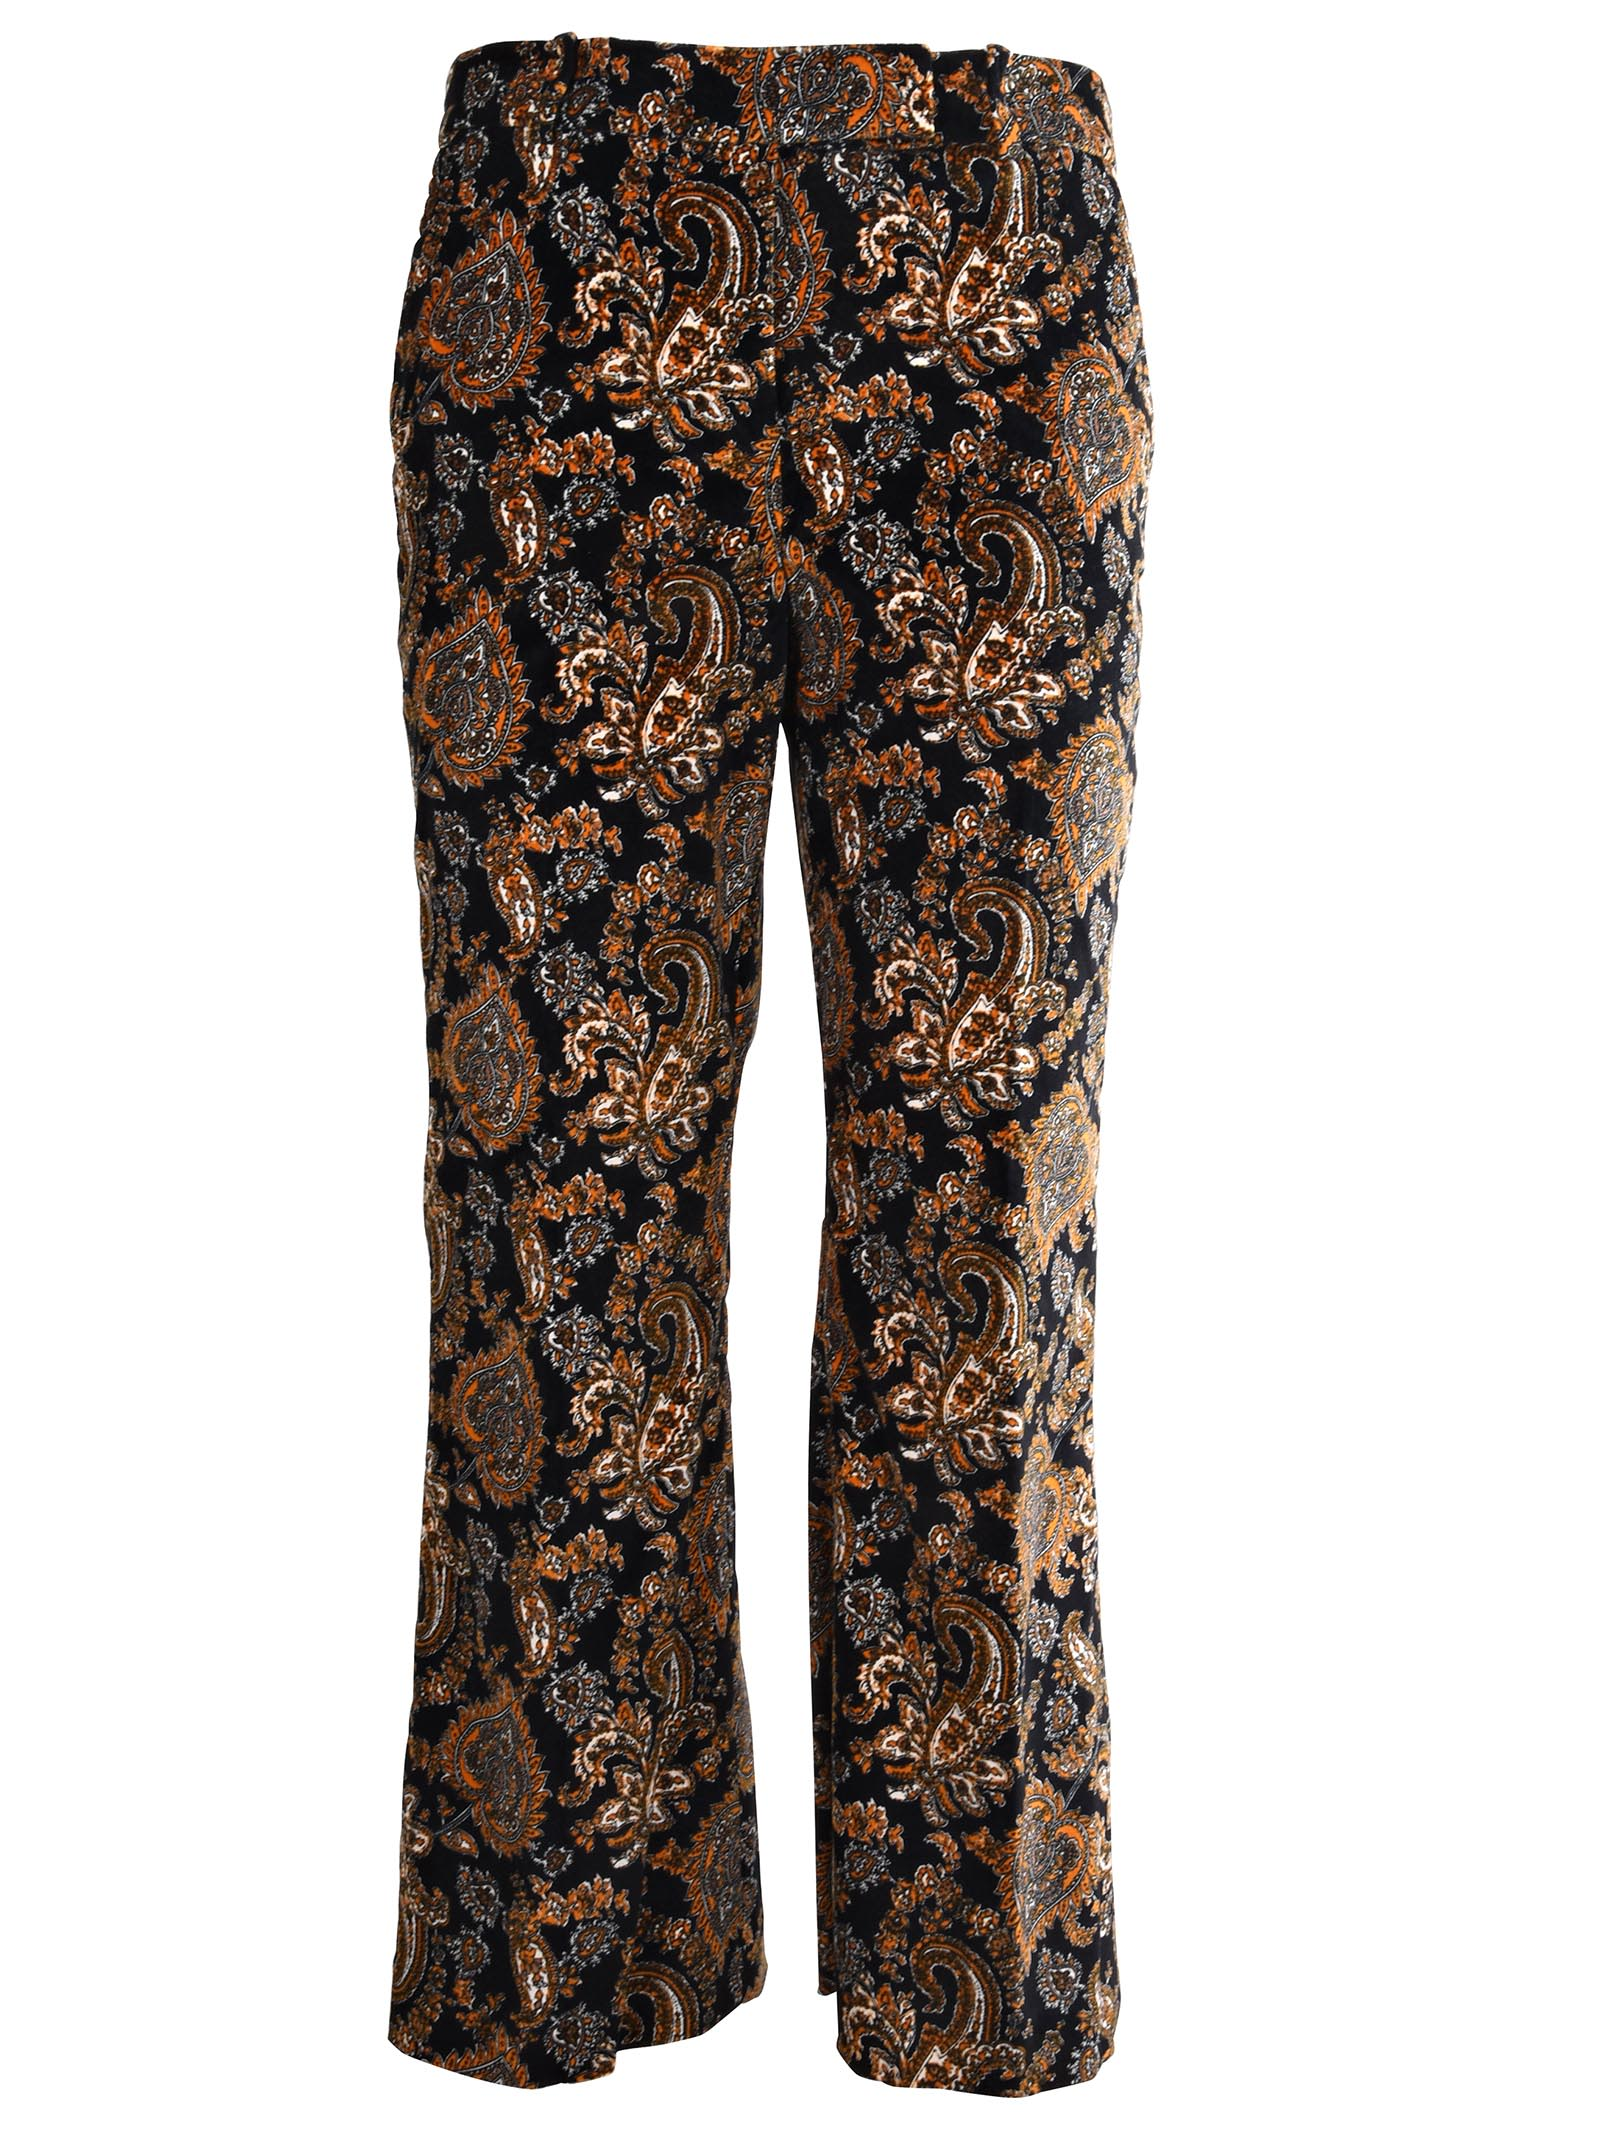 Michael Kors Cottons BAROQUE PATTERN TROUSERS